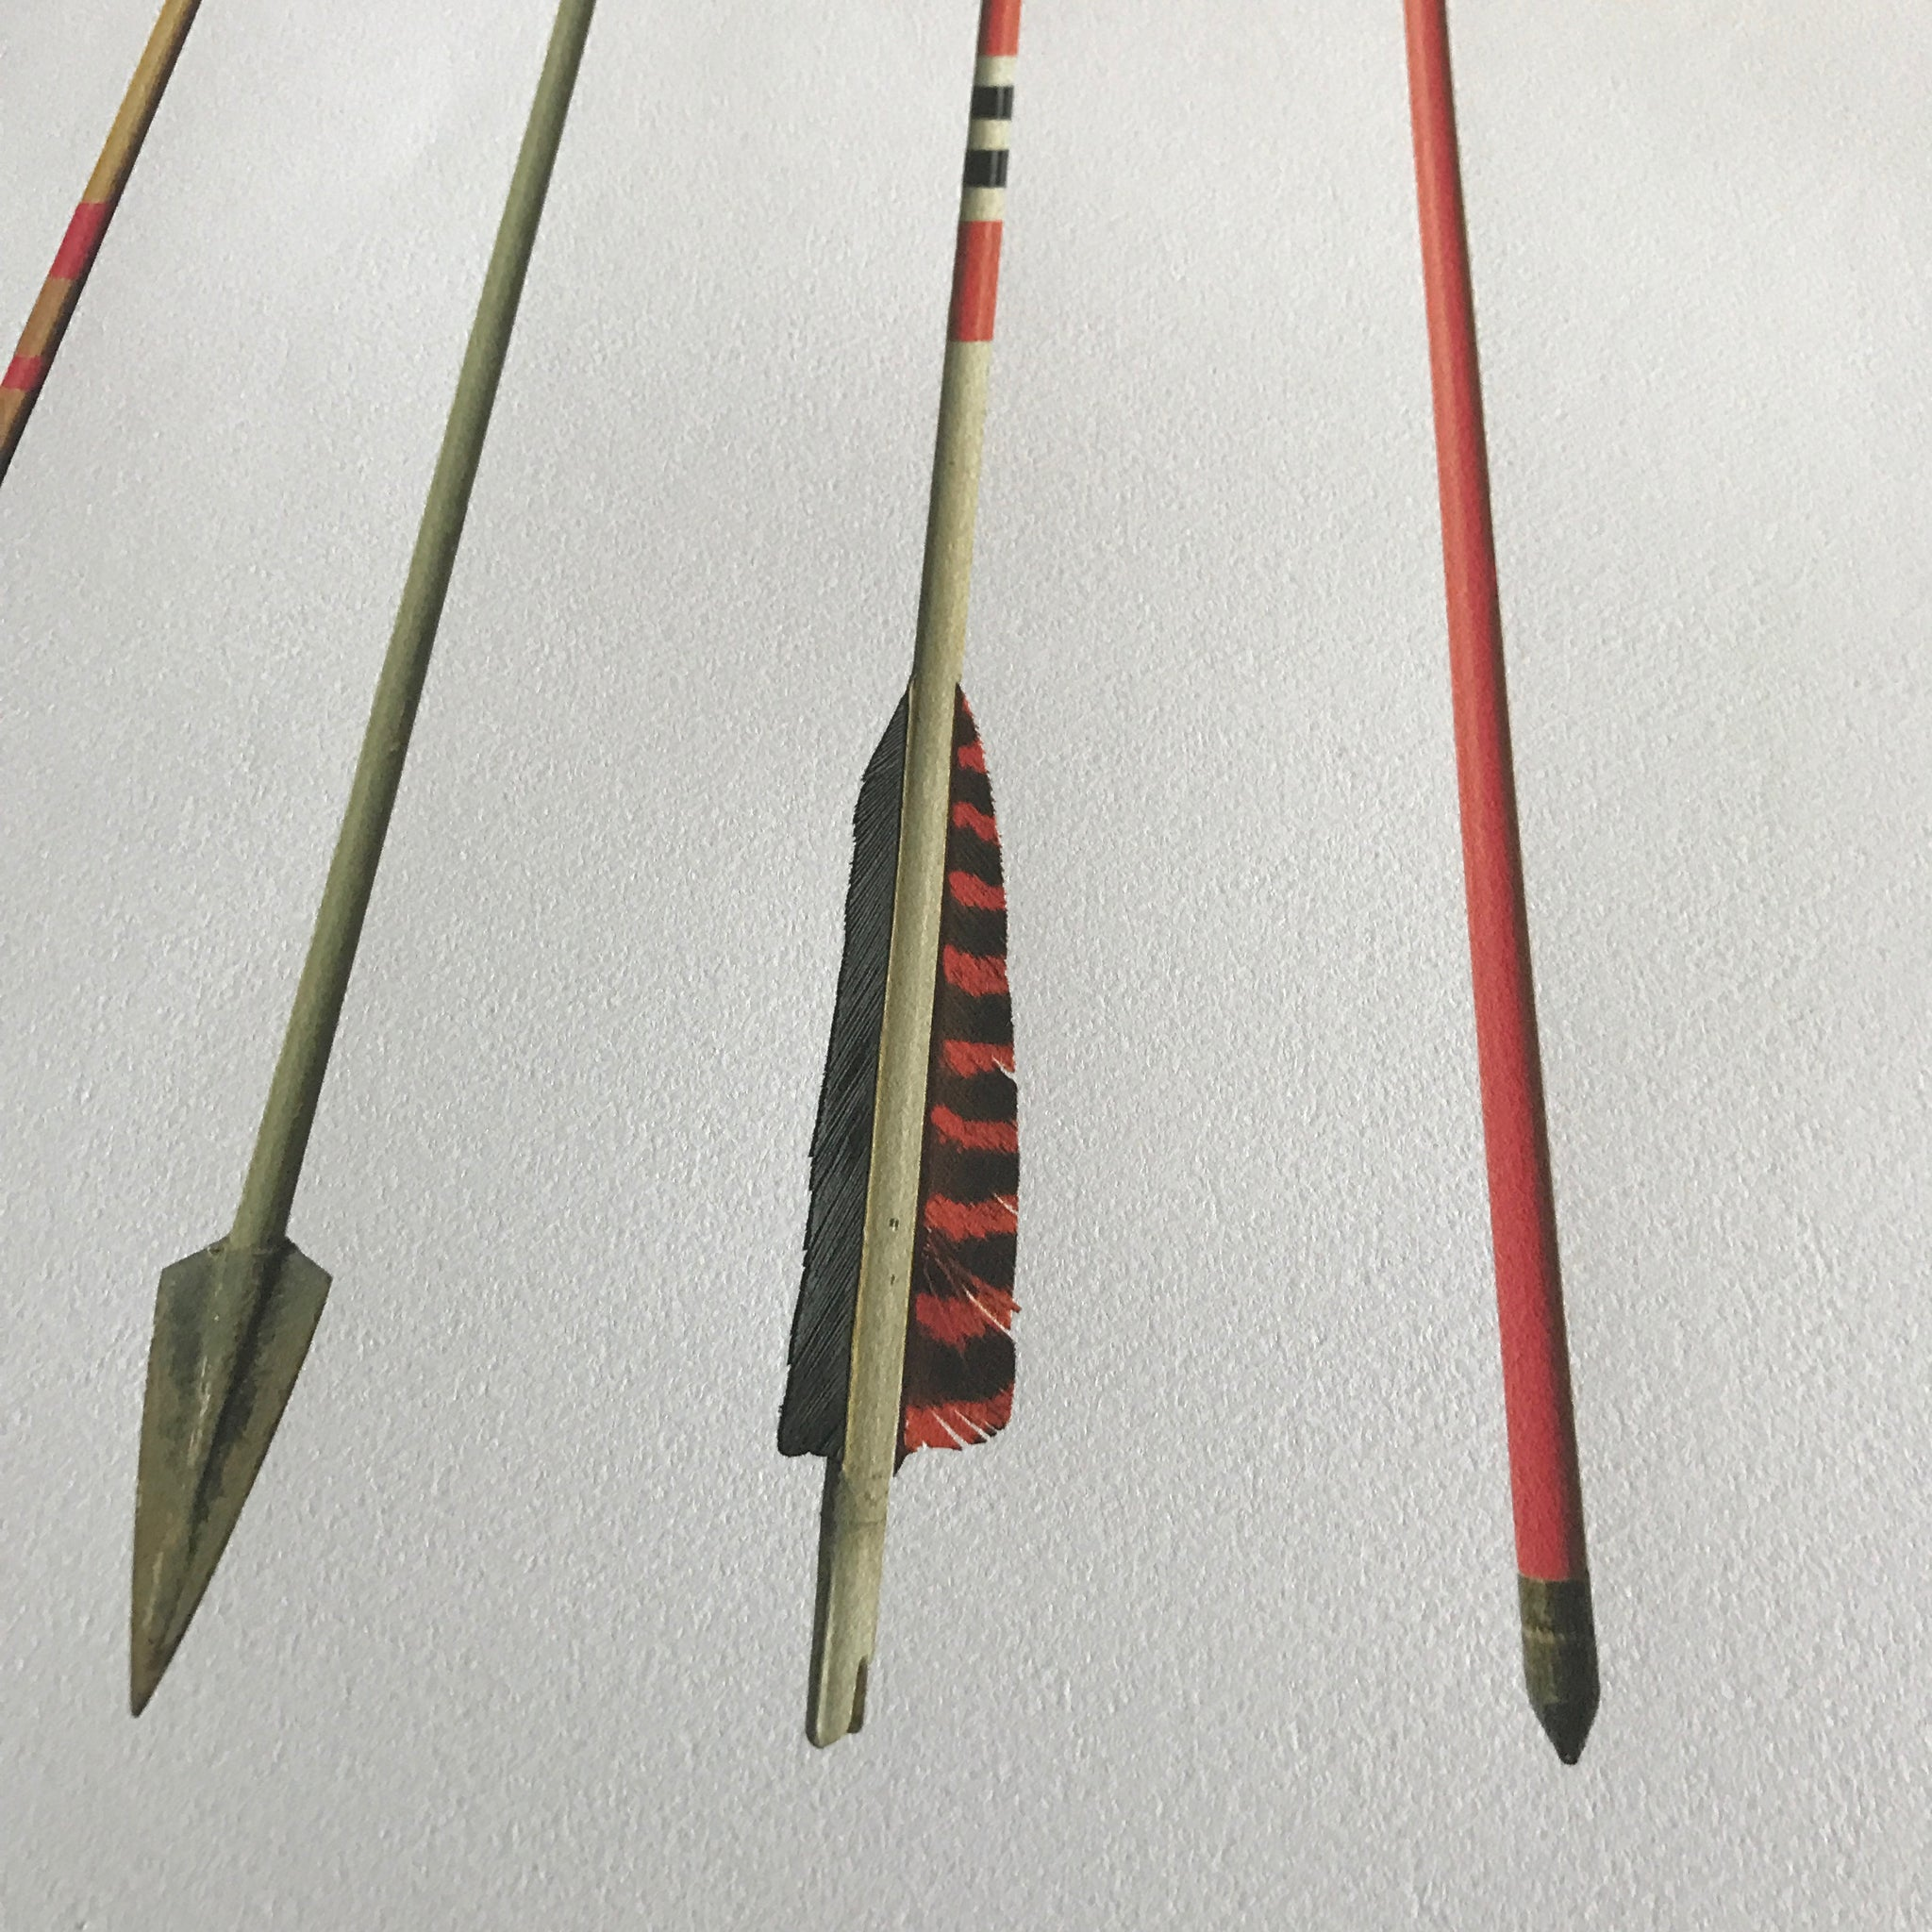 Vintage Arrow Study Number 3 by Barloga Studios